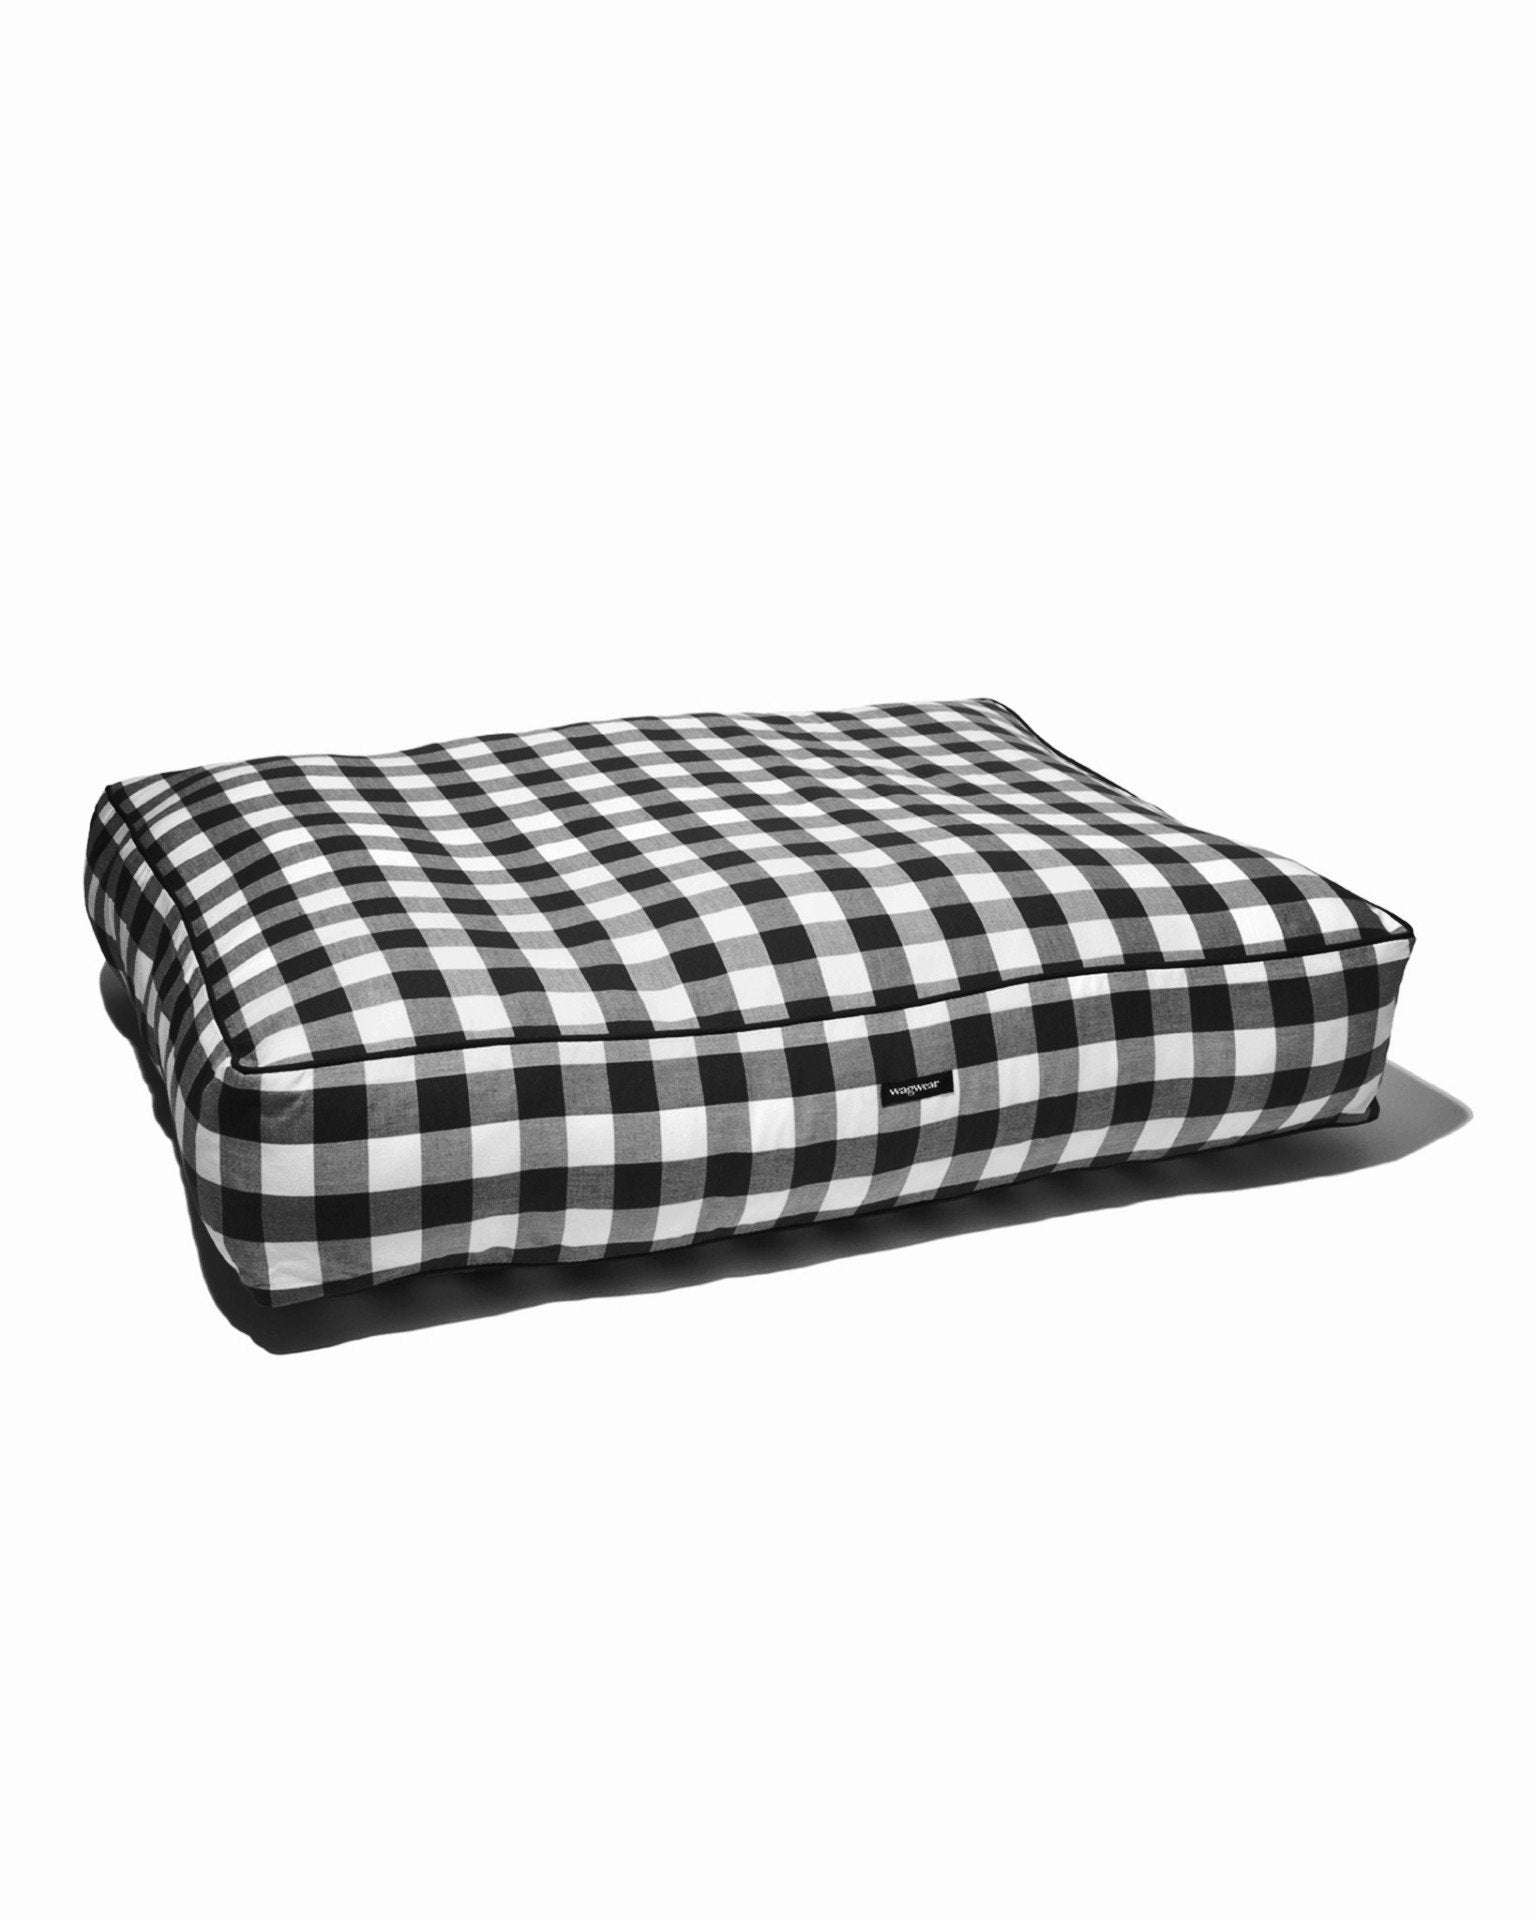 Gingham Checked Bed